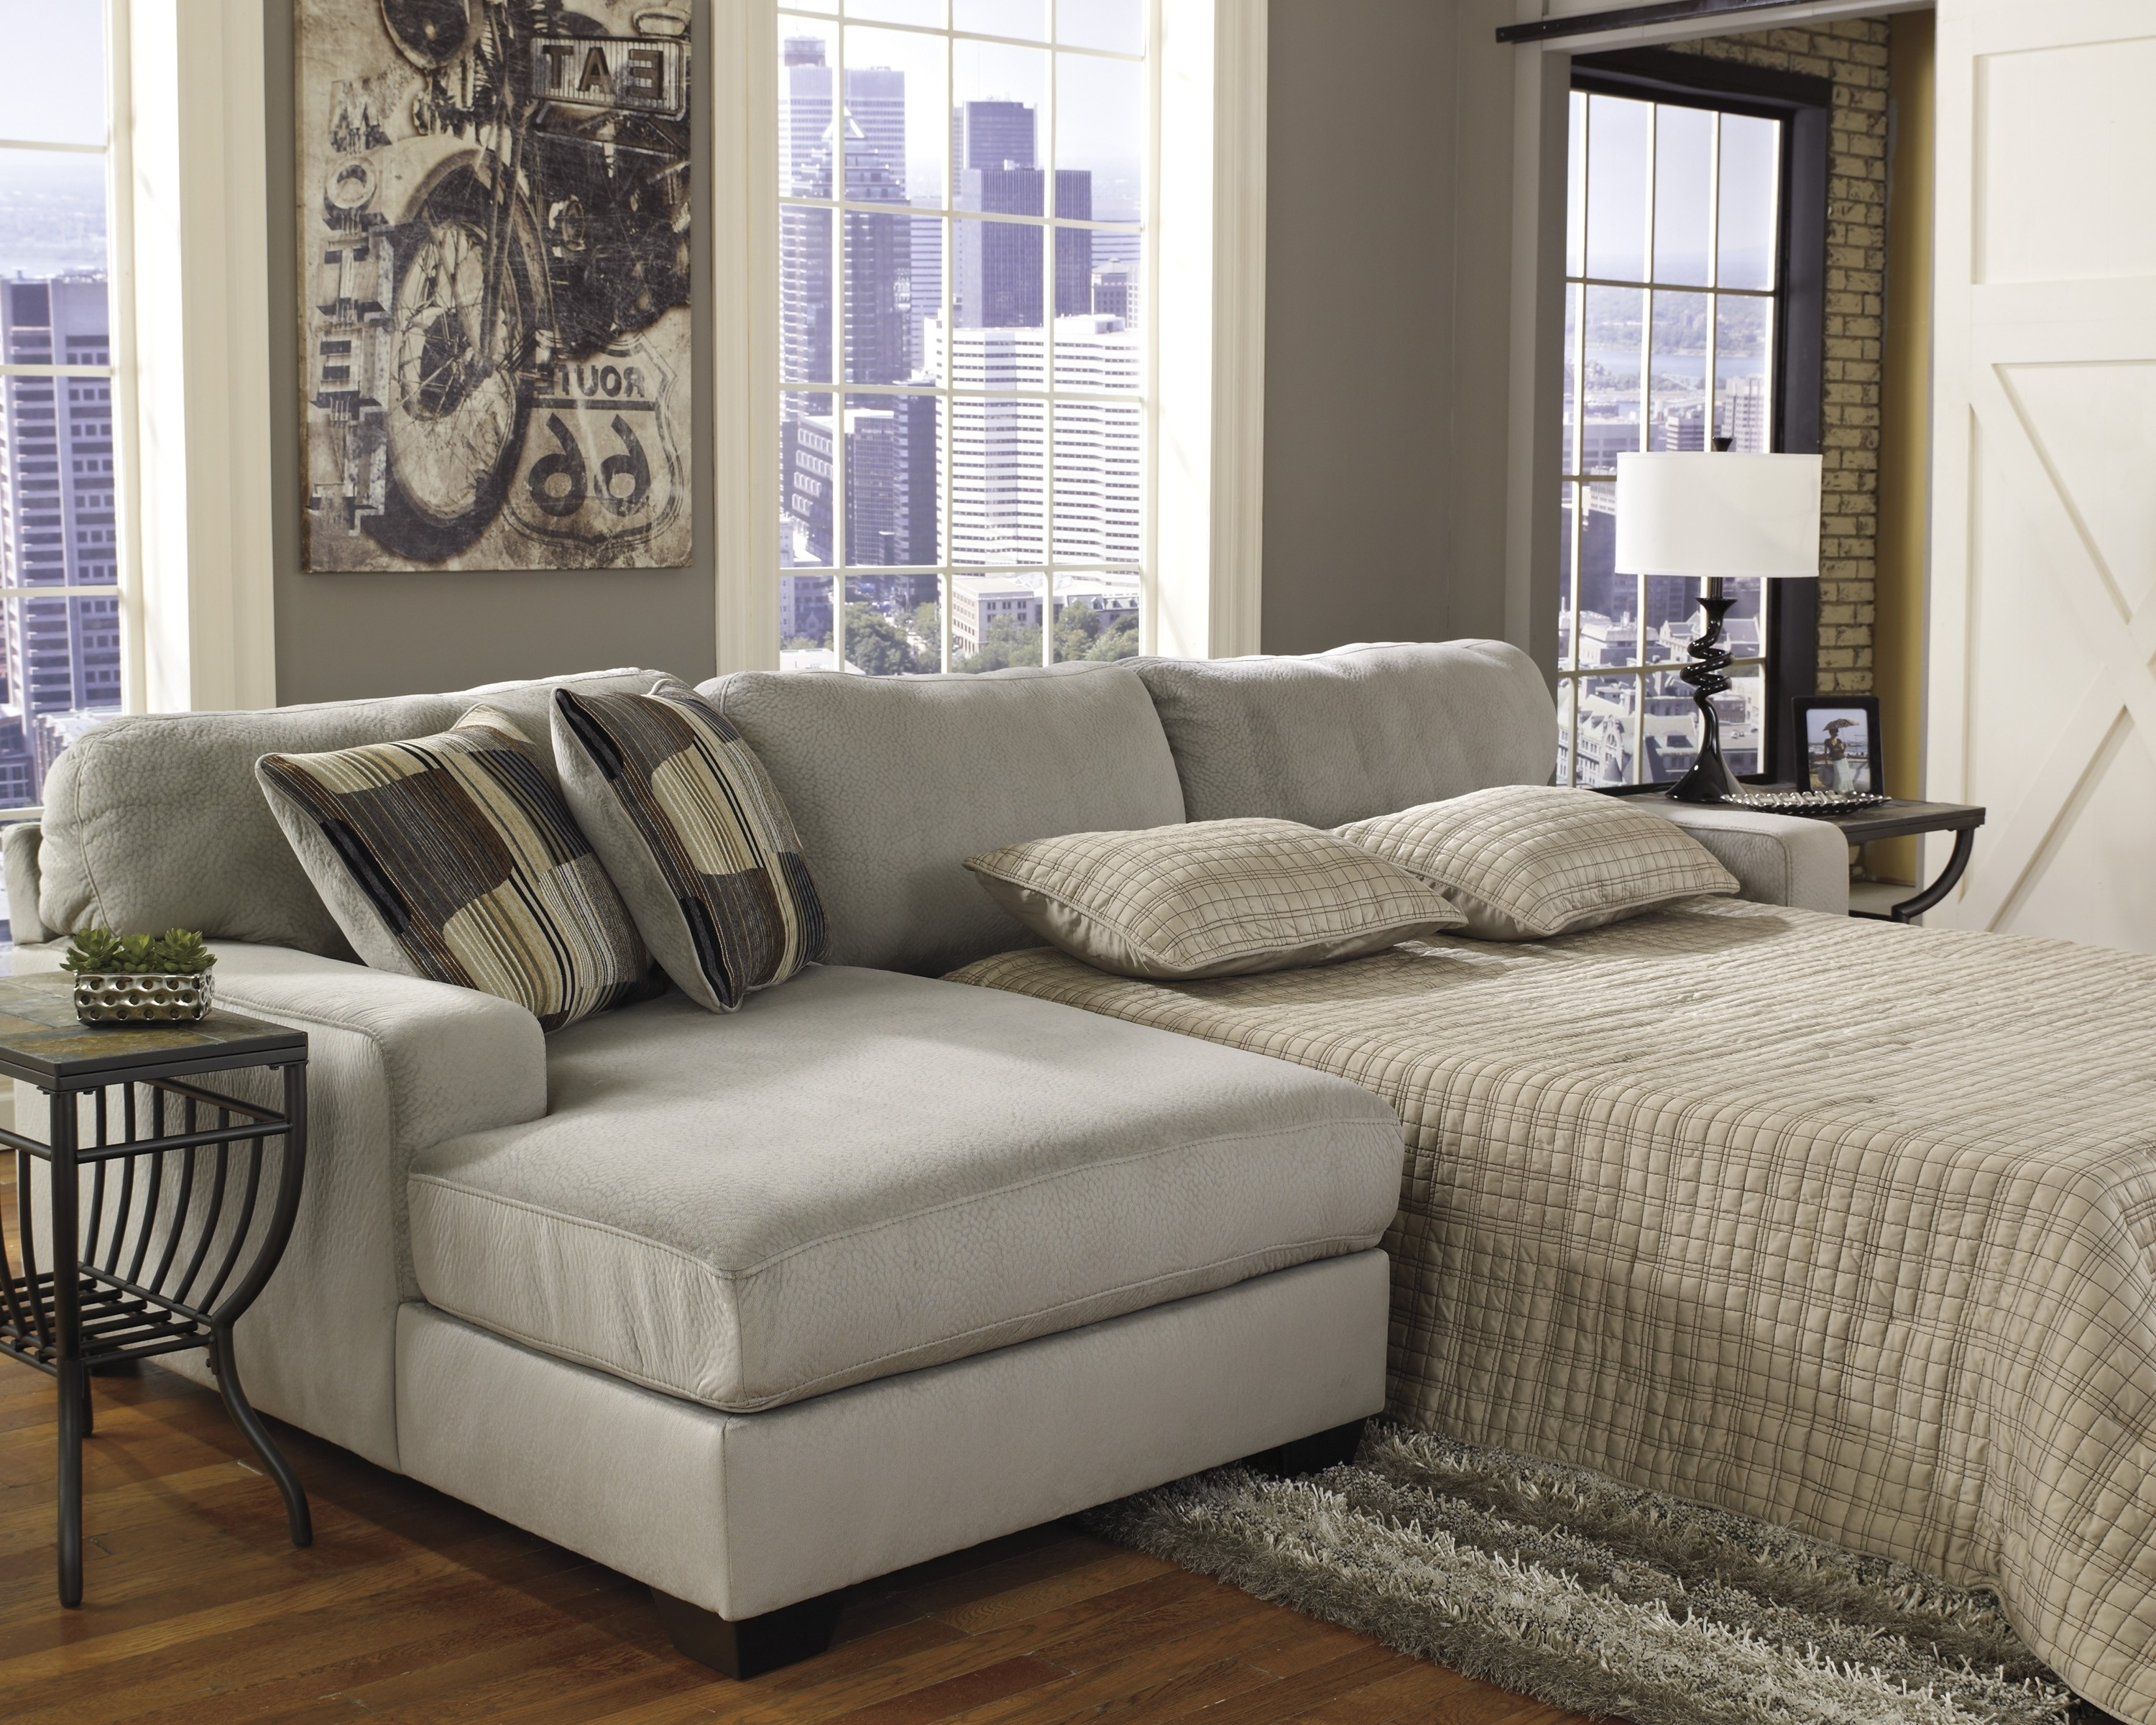 Latest Sectional Sleeper Sofas With Chaise Inside Stunning Sectional Sleeper Sofa With Chaise Latest Cheap Furniture (View 7 of 20)